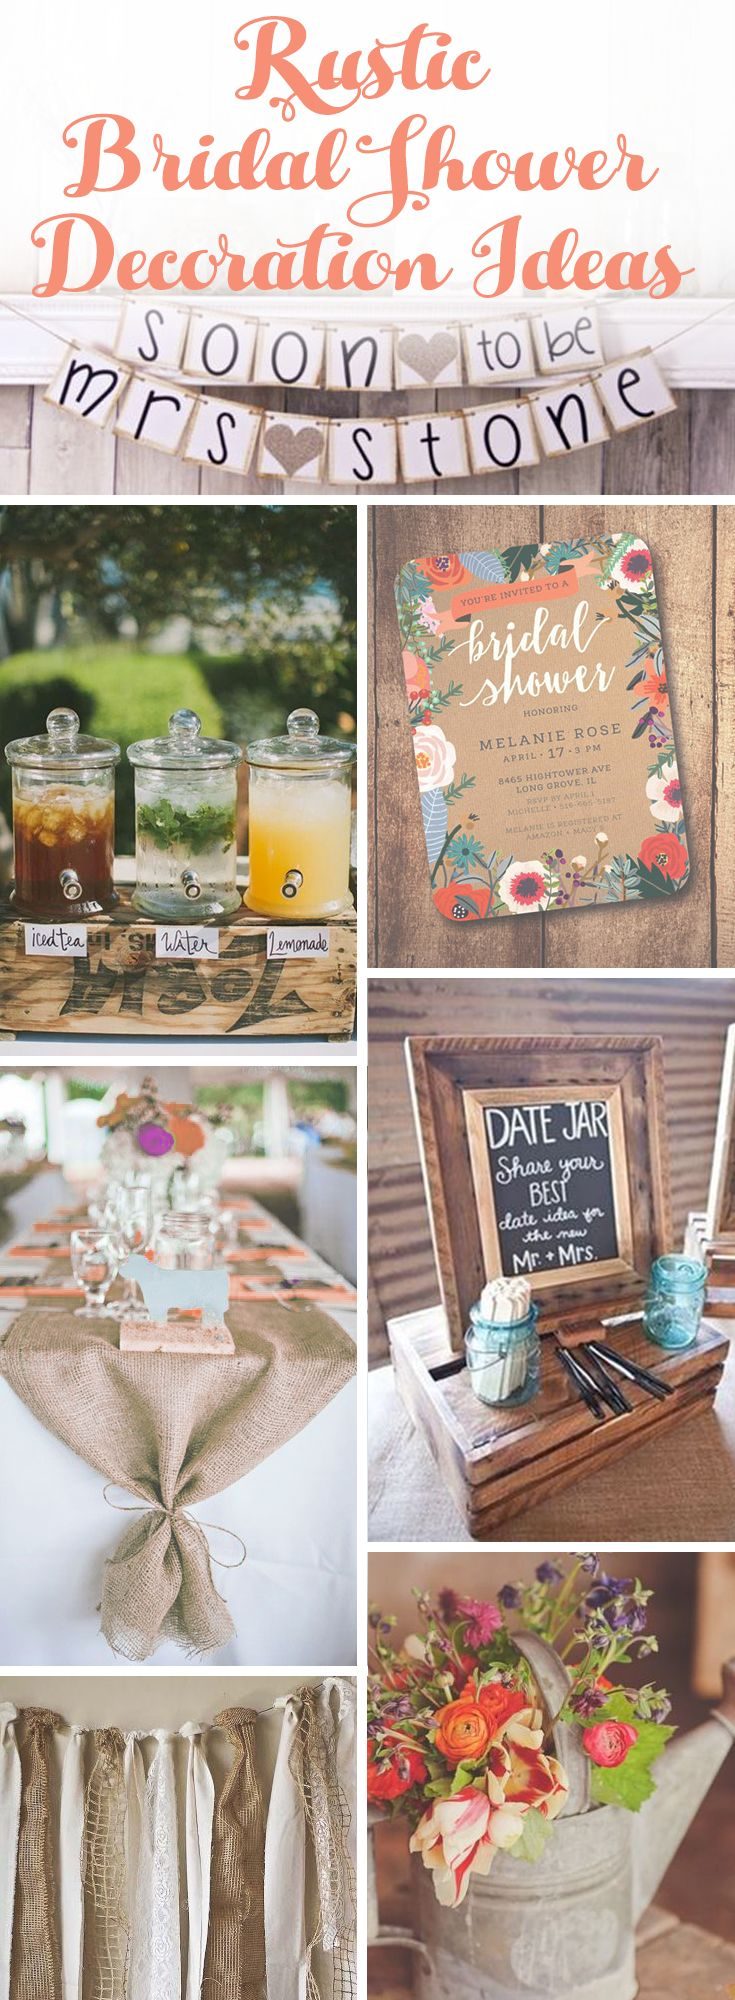 93 best bridal shower ms h images on pinterest birthdays party 2016 bridal shower ideas for rustic themed parties mason jar accents colorful rustic flowered junglespirit Gallery